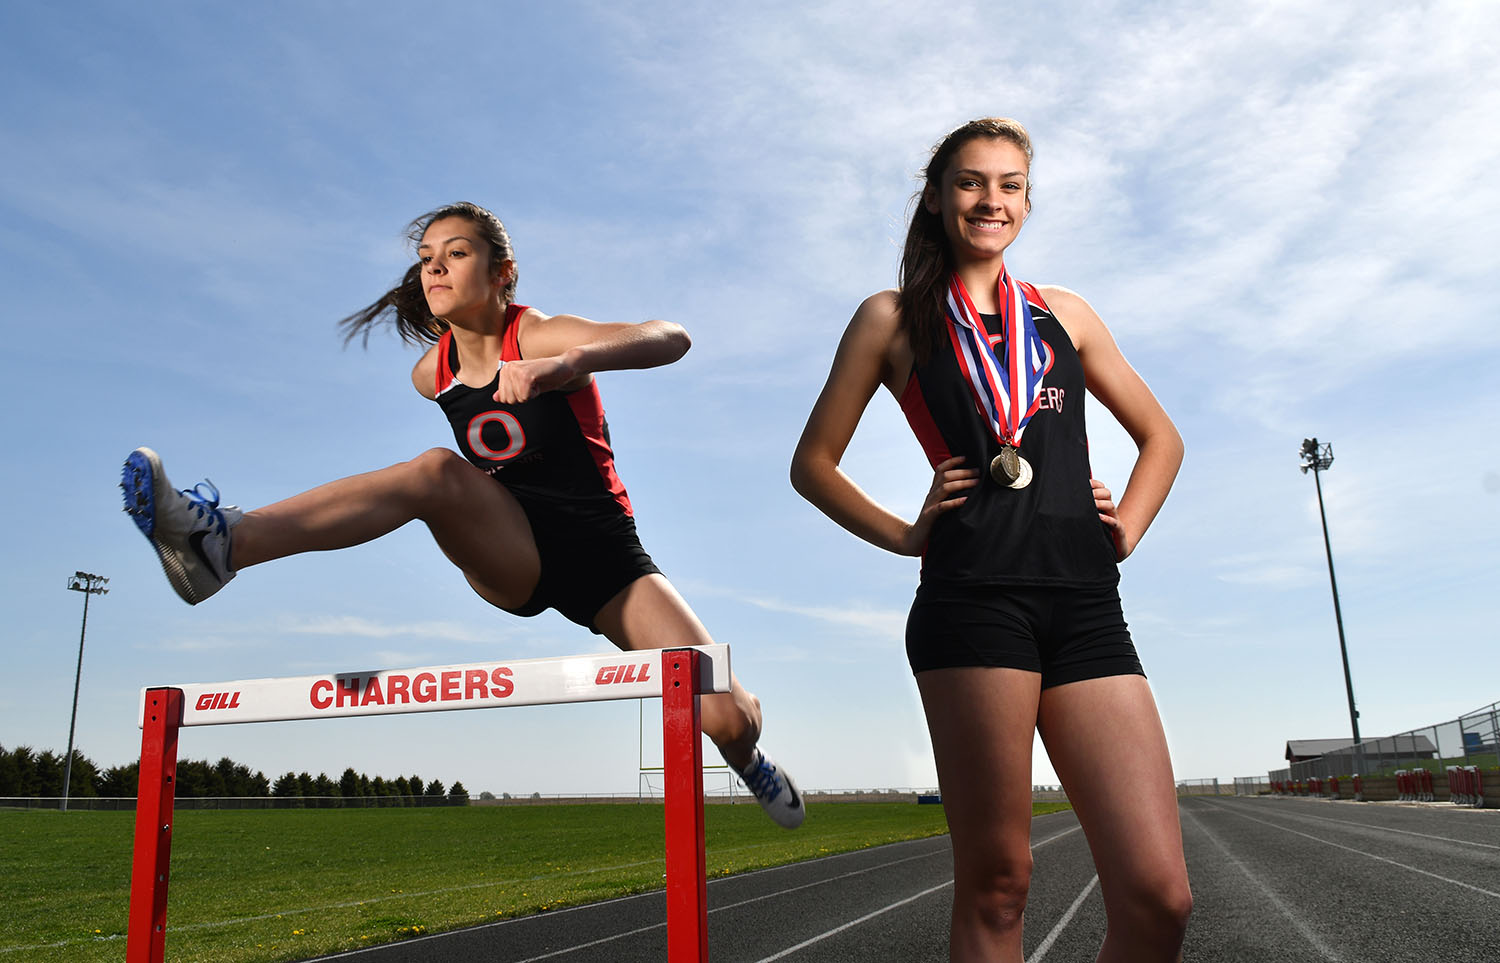 Orion girls' track standout Danielle Taets is this week's Dispatch-Argus-QCOnline Area Pacesetter. The junior is coming off three titles (triple jump, 100 high hurdles, 300 low hurdles) and a runner-up finish (100 meter dash) at last Thursday's Three Rivers Conference meet.   (Todd Mizener - Dispatch/Argus)